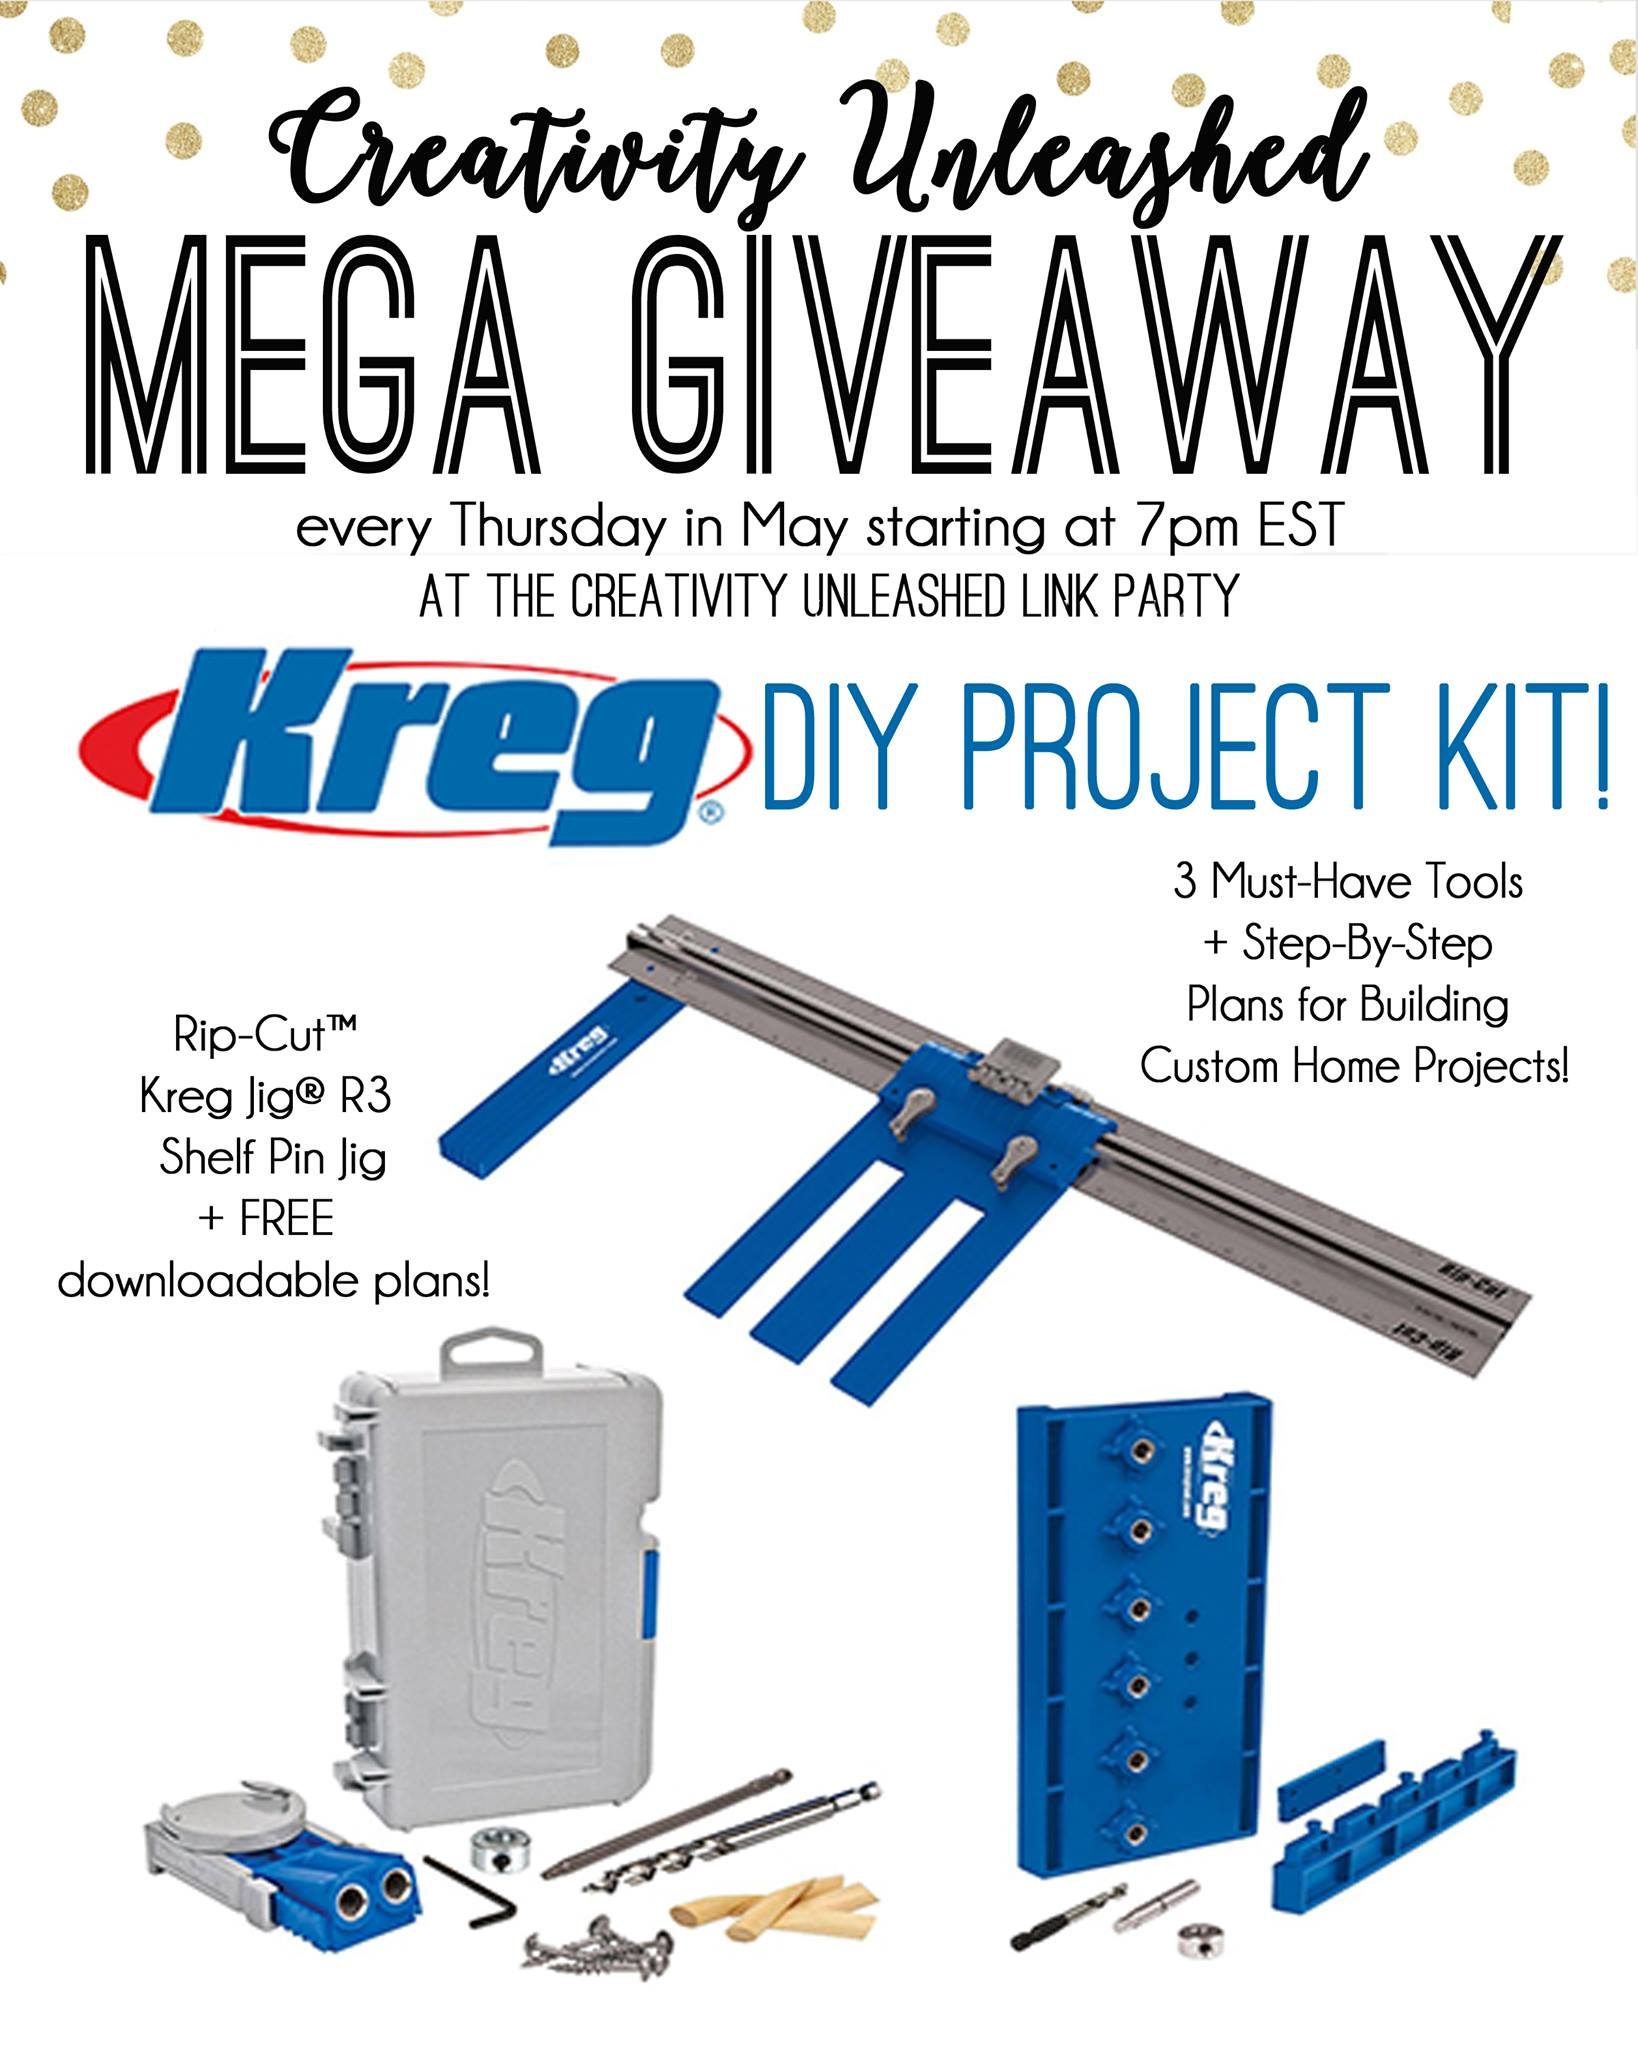 Creativity unleashed link party 120 and kreg giveaway here comes diy project kit from kreg 13122923102099335248011138196919258479916280o solutioingenieria Images